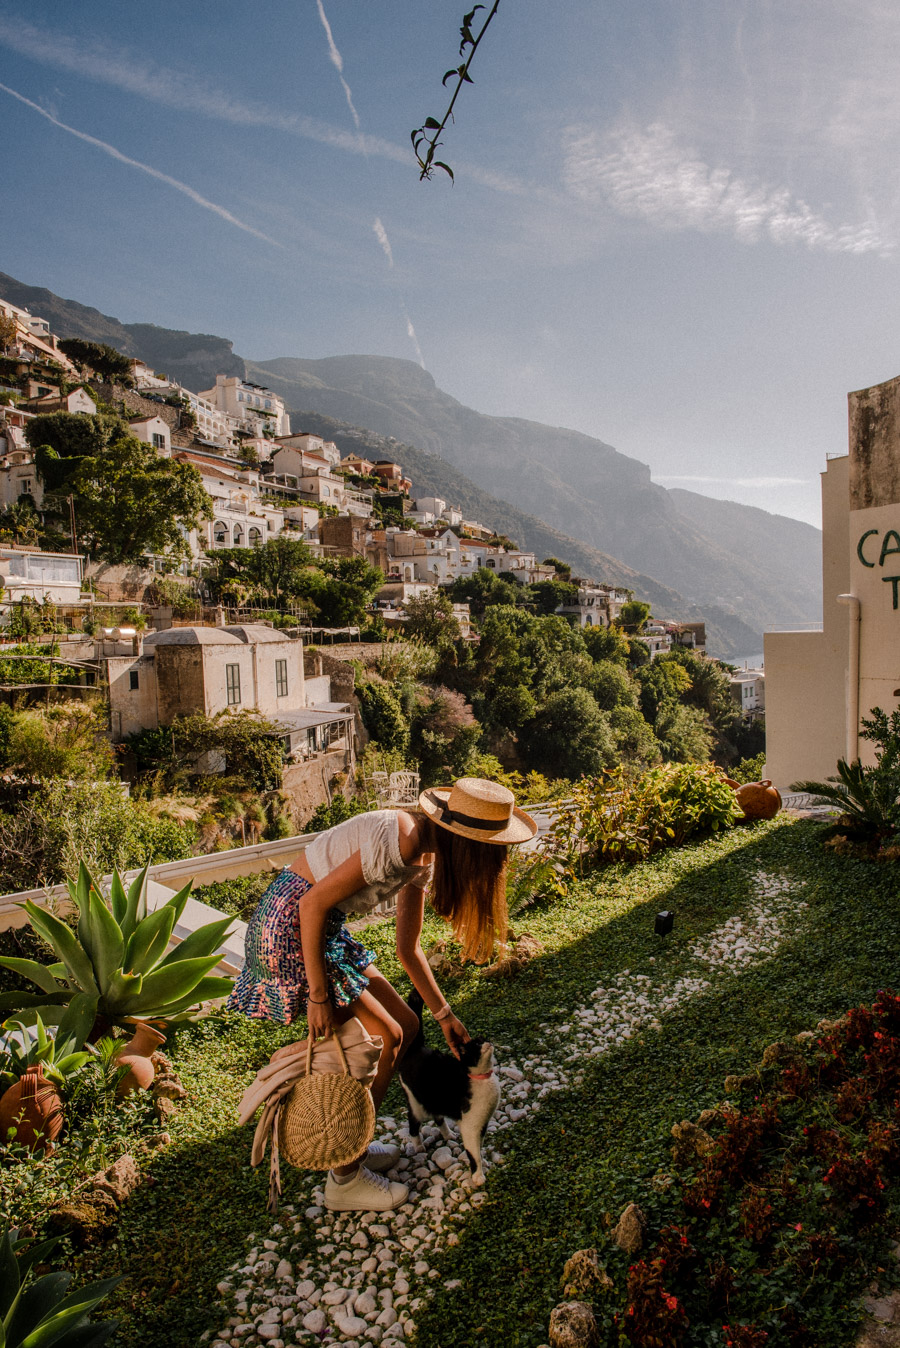 This travel guide covers the best places to stay in Positano